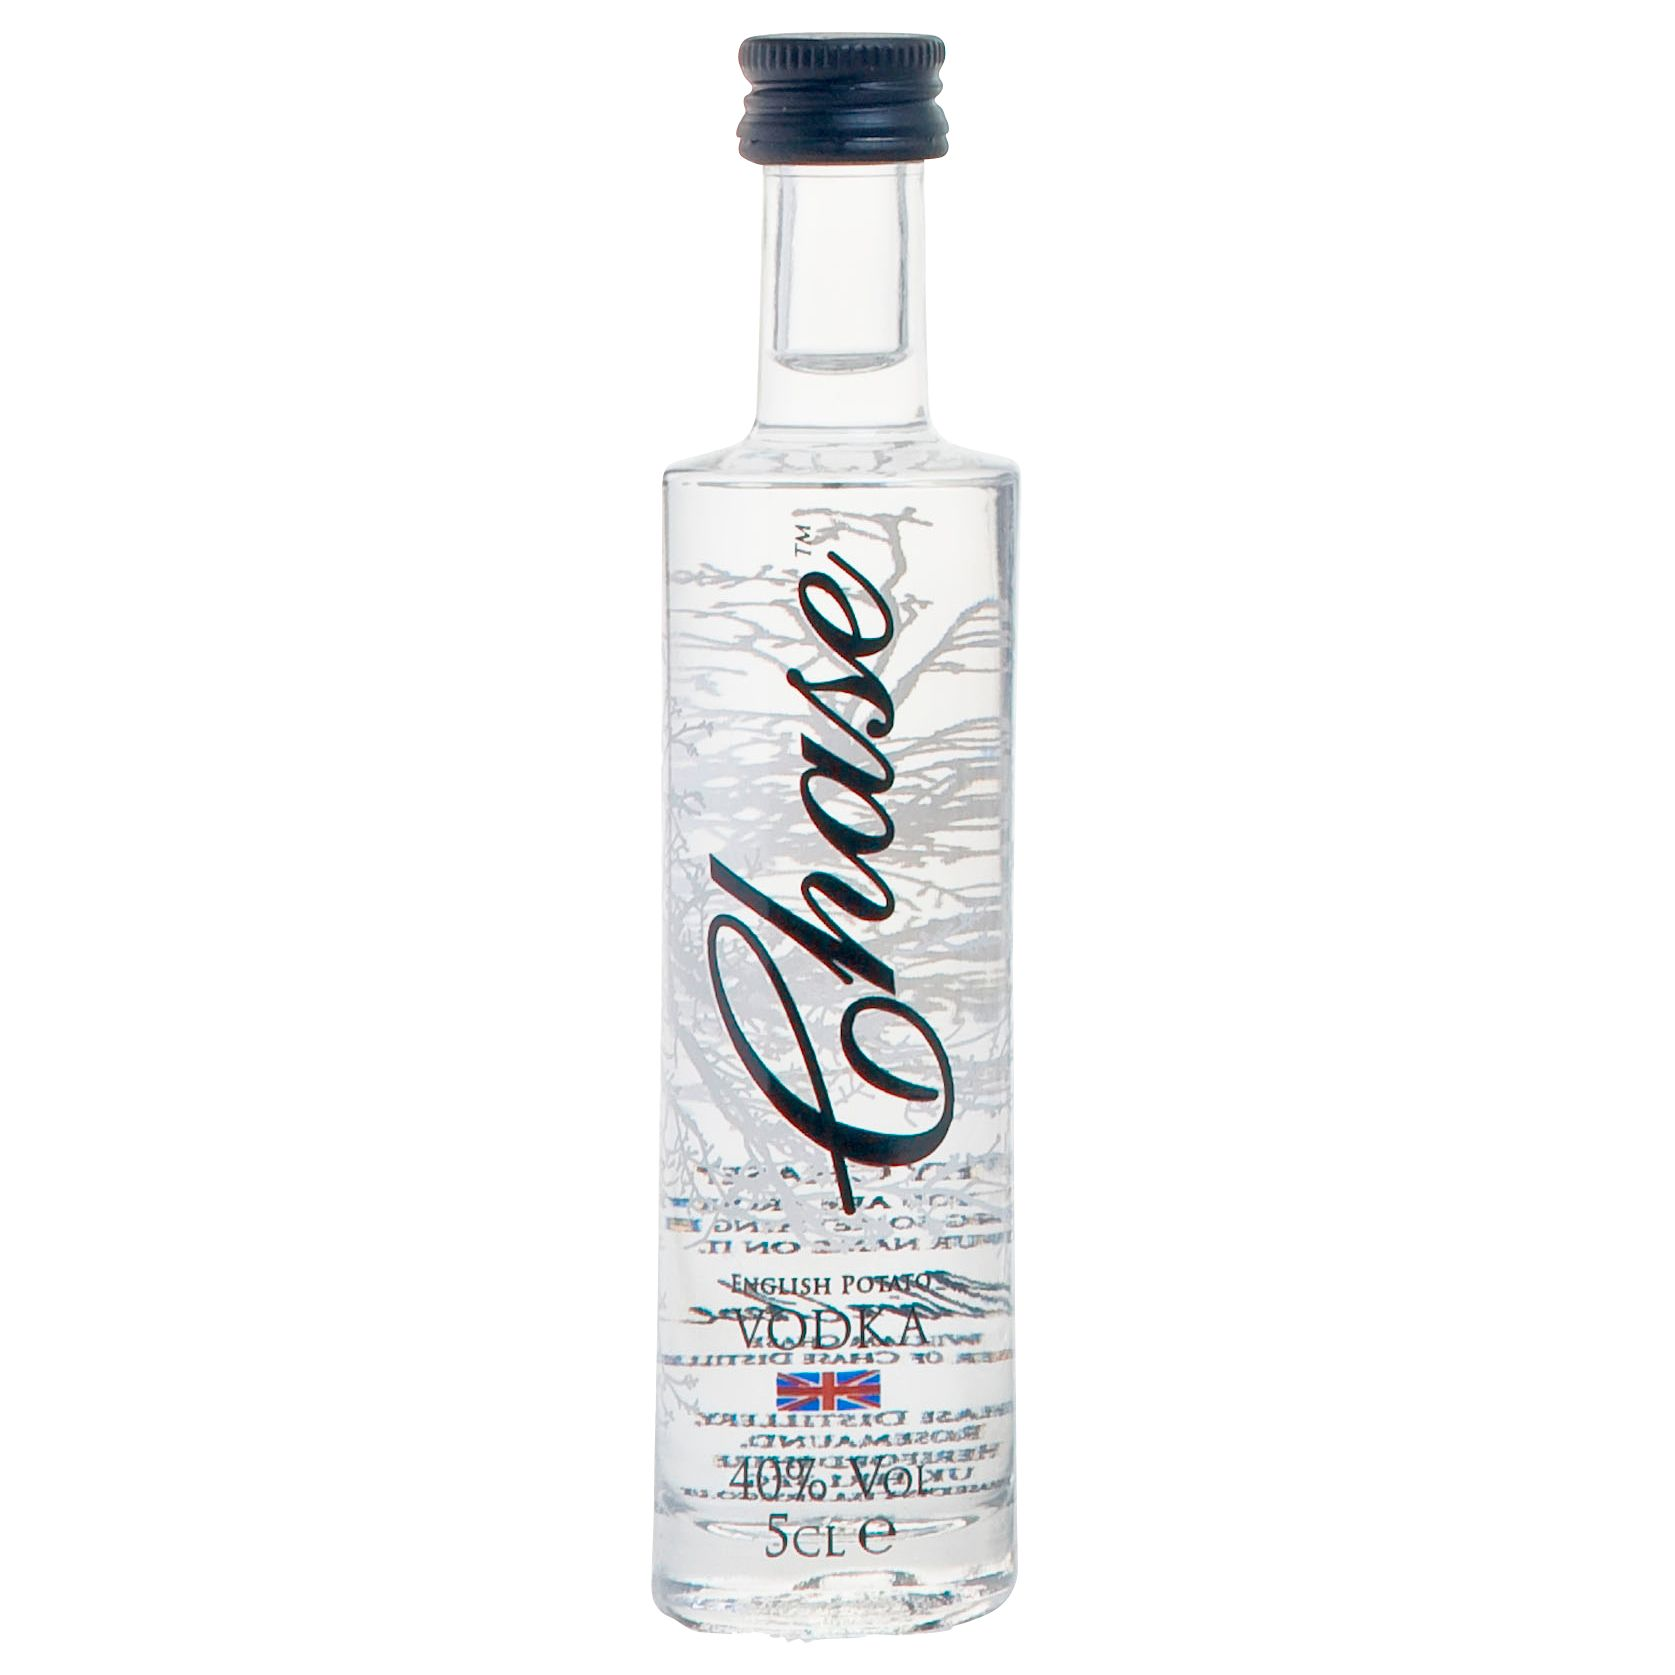 Chase Chase Vodka, 5cl